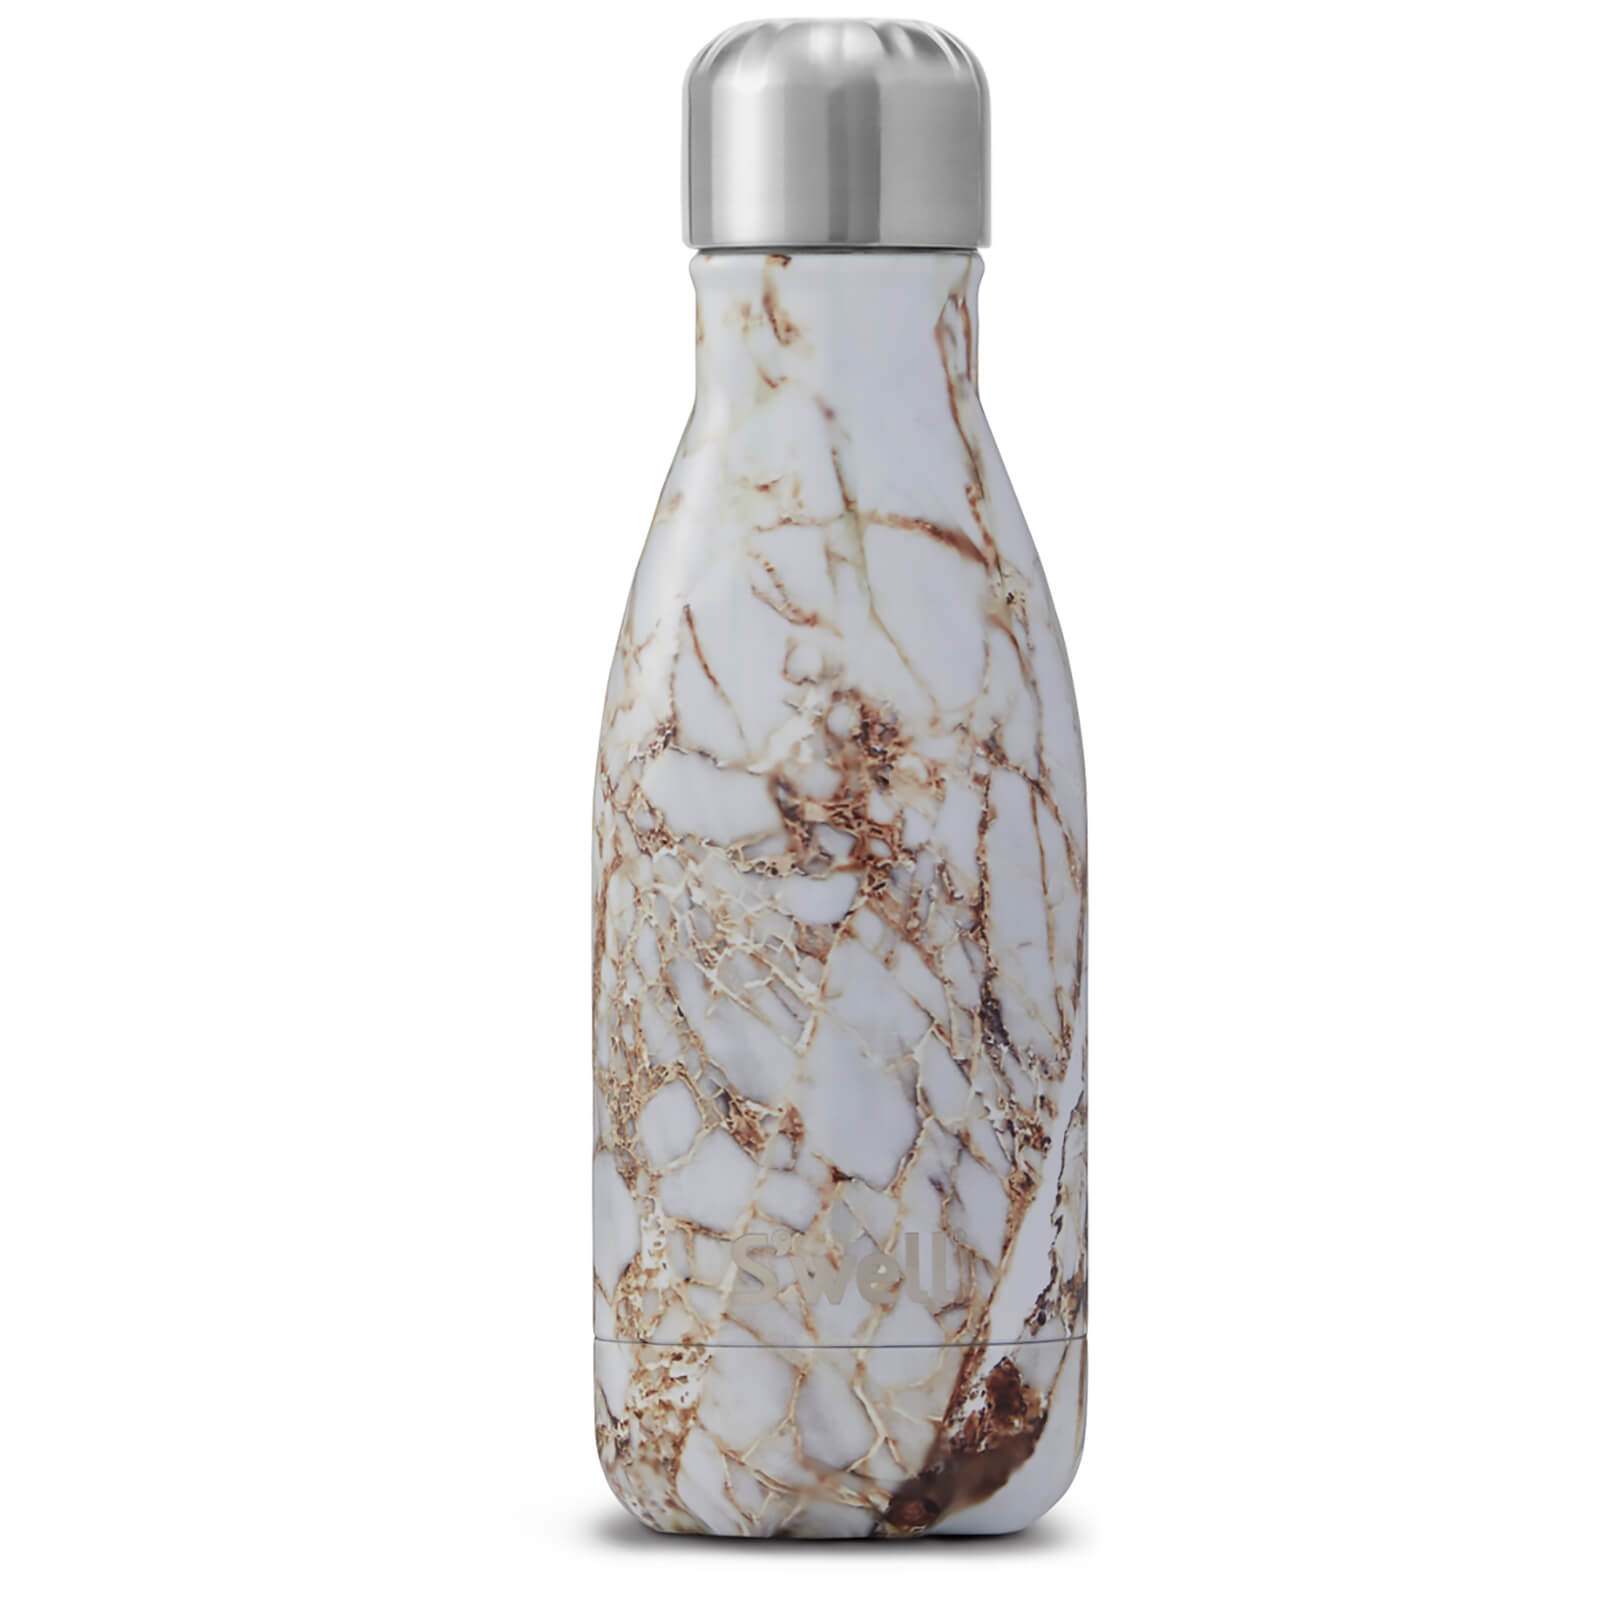 S'well The Calacatta Gold Water Bottle 260ml